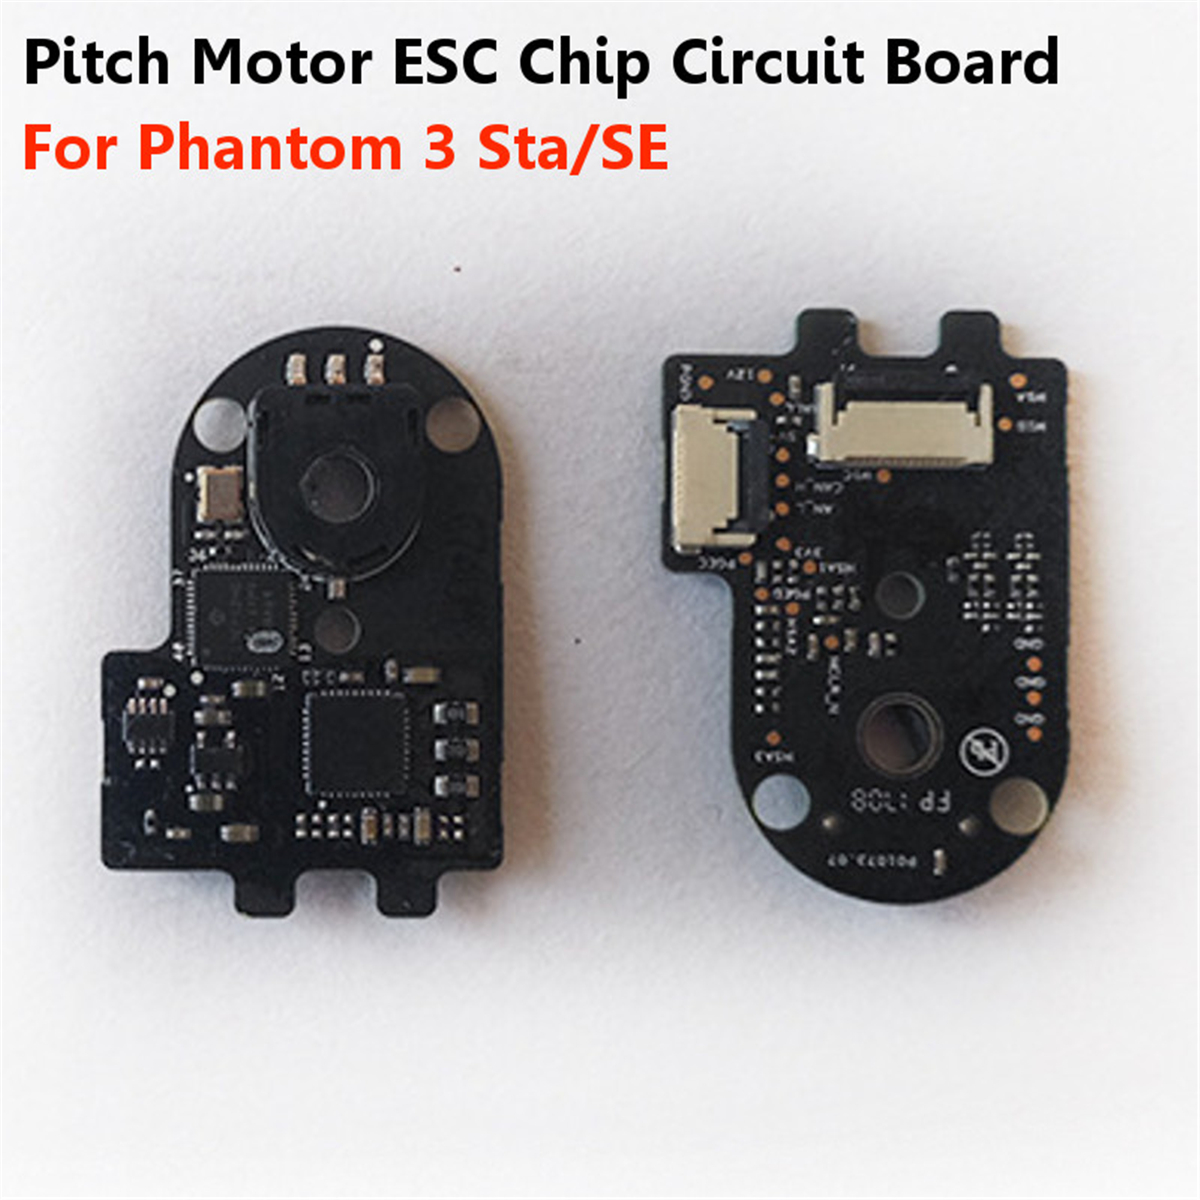 Roll/Pitch Motor ESC Chip Circuit Board RC Quadcopter Parts for DJI Phantom 3 Adv/Pro Sta/SE - Photo: 5